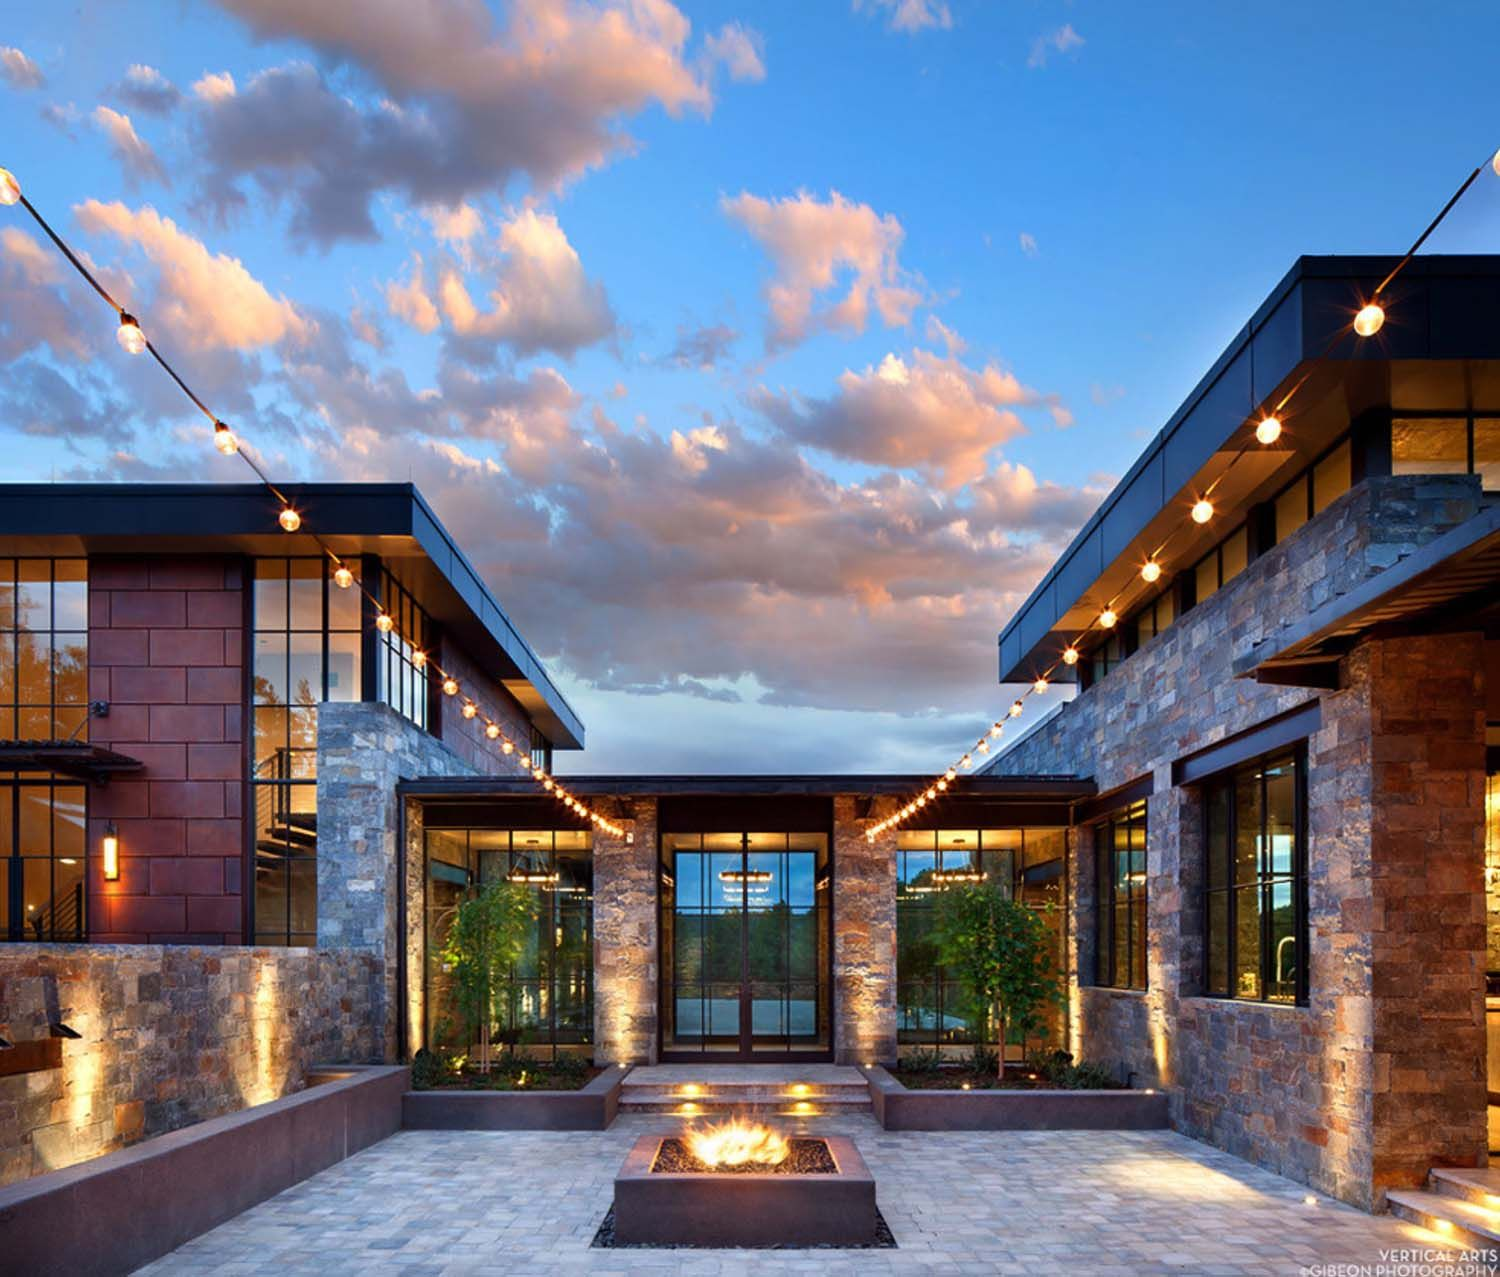 Home Design Ideas Contemporary: Remote Colorado Mountain Home Blends Modern And